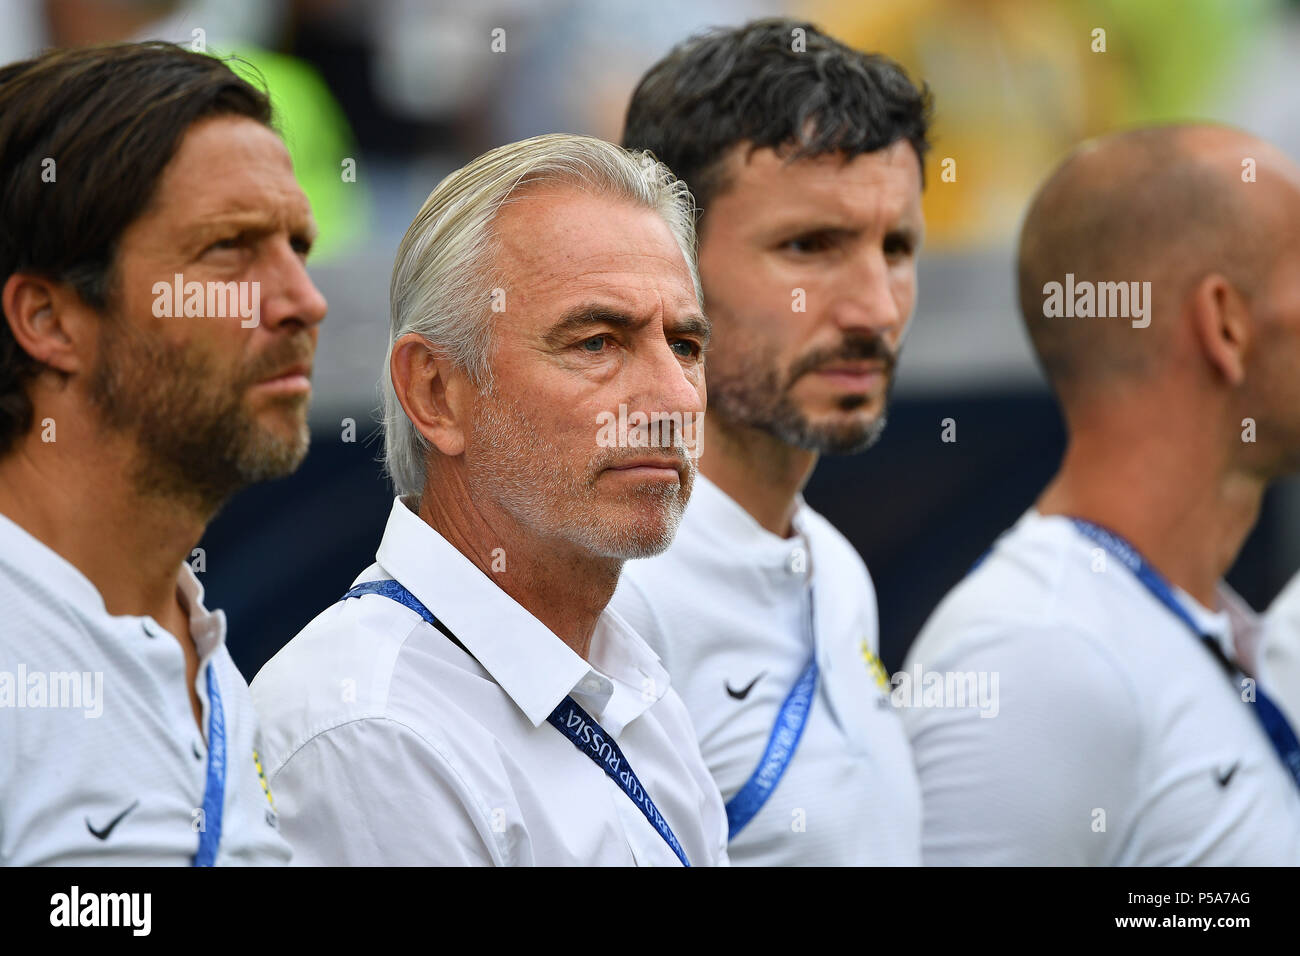 Mark Van Bommel Stock Photos & Mark Van Bommel Stock ...